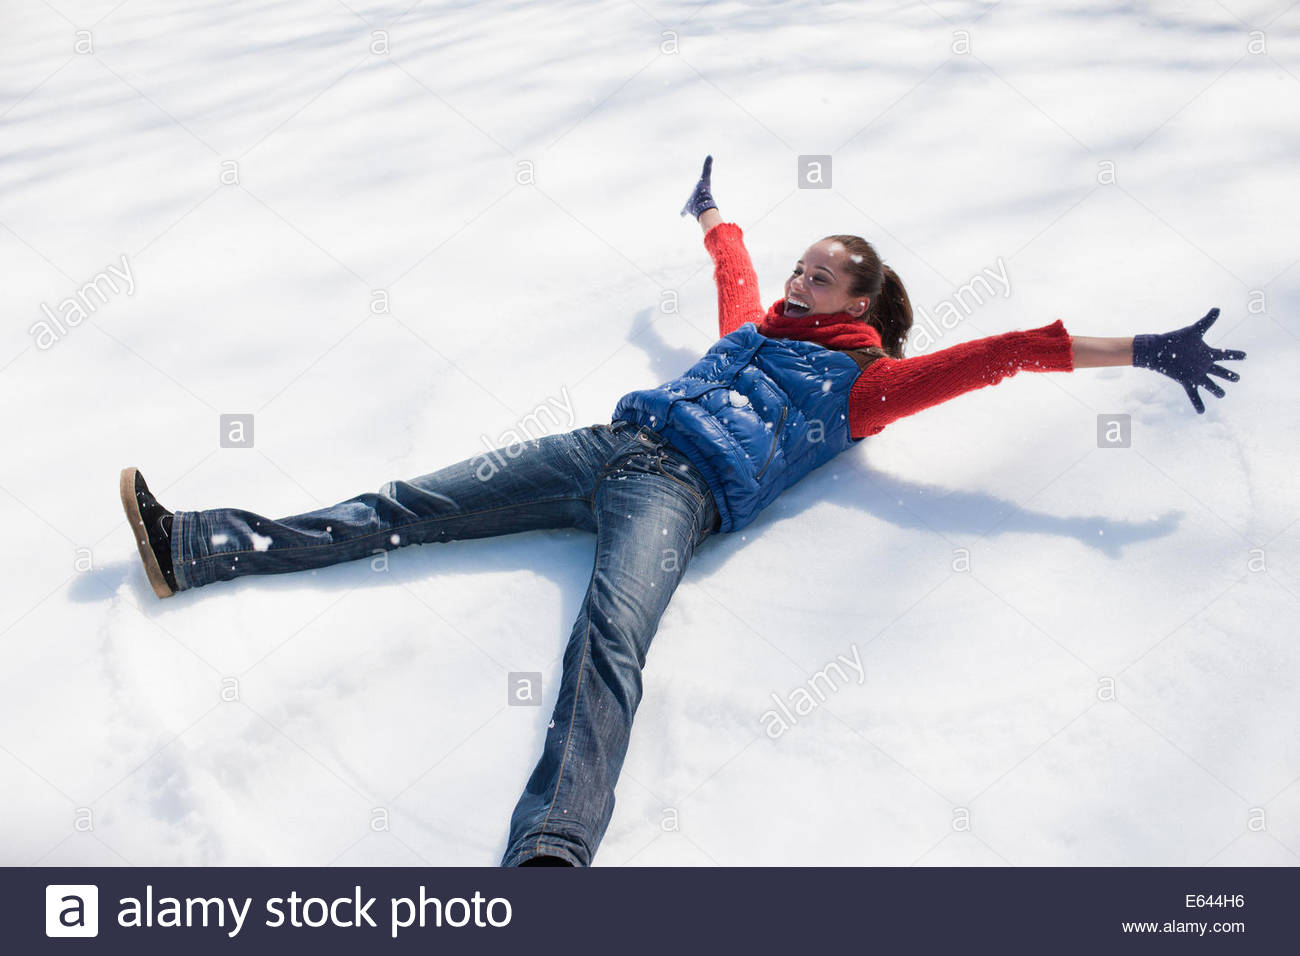 Enthusiastic woman making snow angel - Stock Image